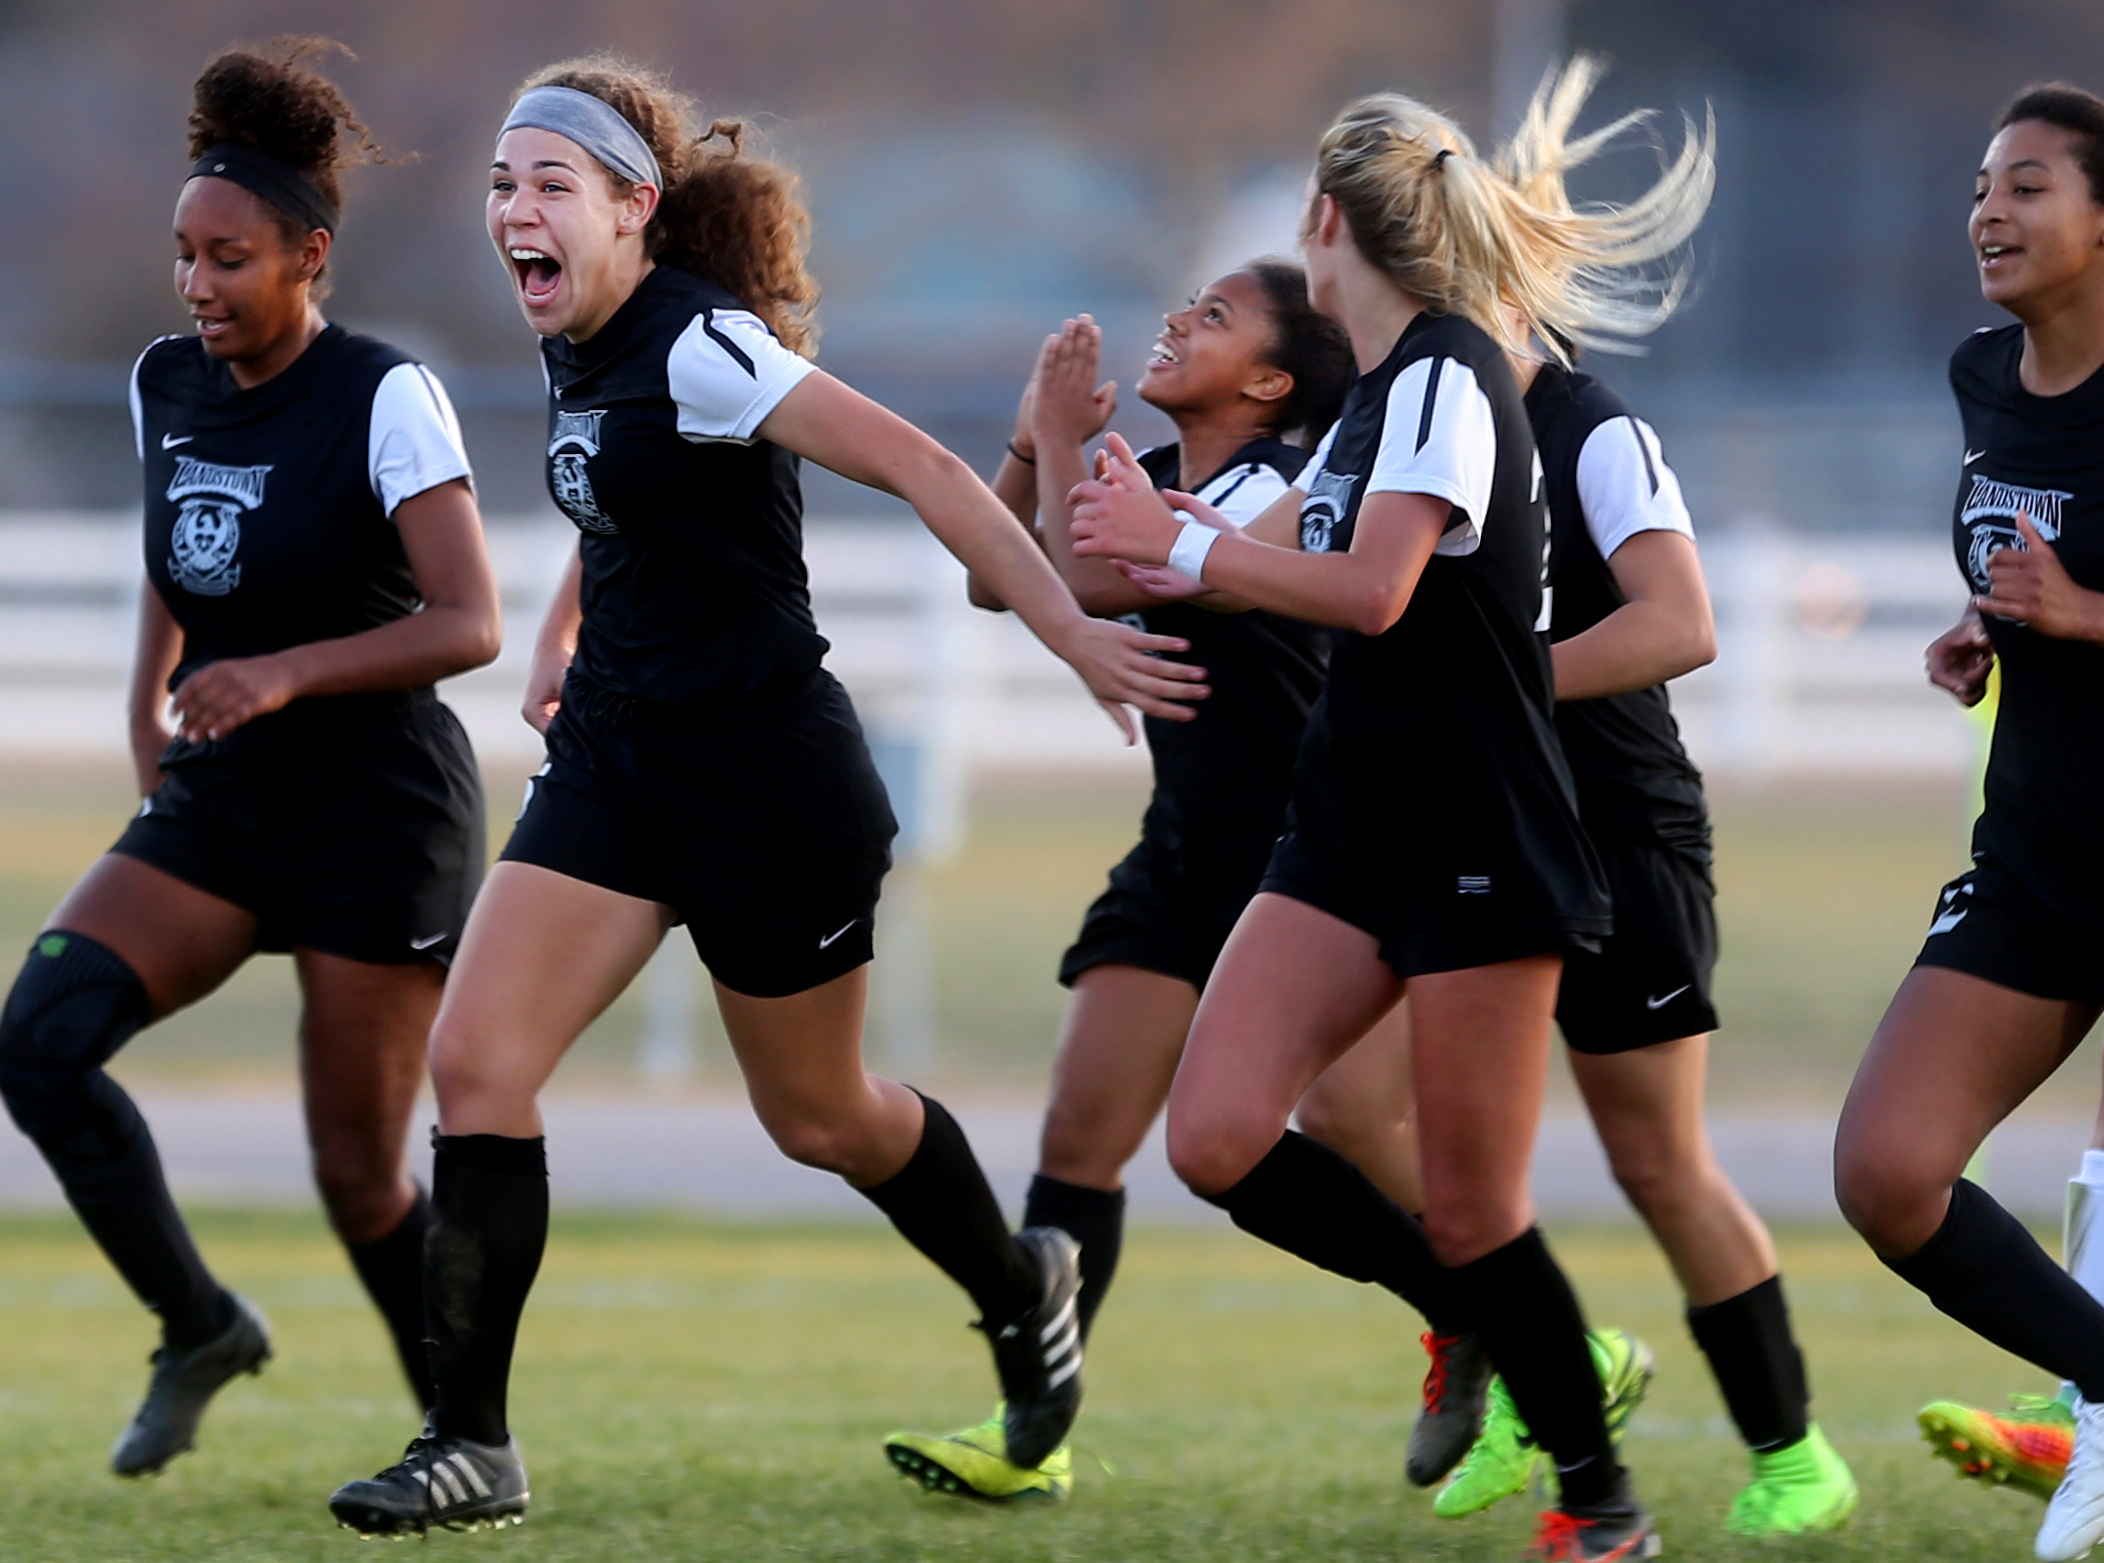 Landstown's Trinity Sudderth, second from left, celebrates after her goal tied the match 1-1 in the closing seconds of their draw against Cox, Tuesday, March 21, 2017 at Cox high School in Virginia Beach.